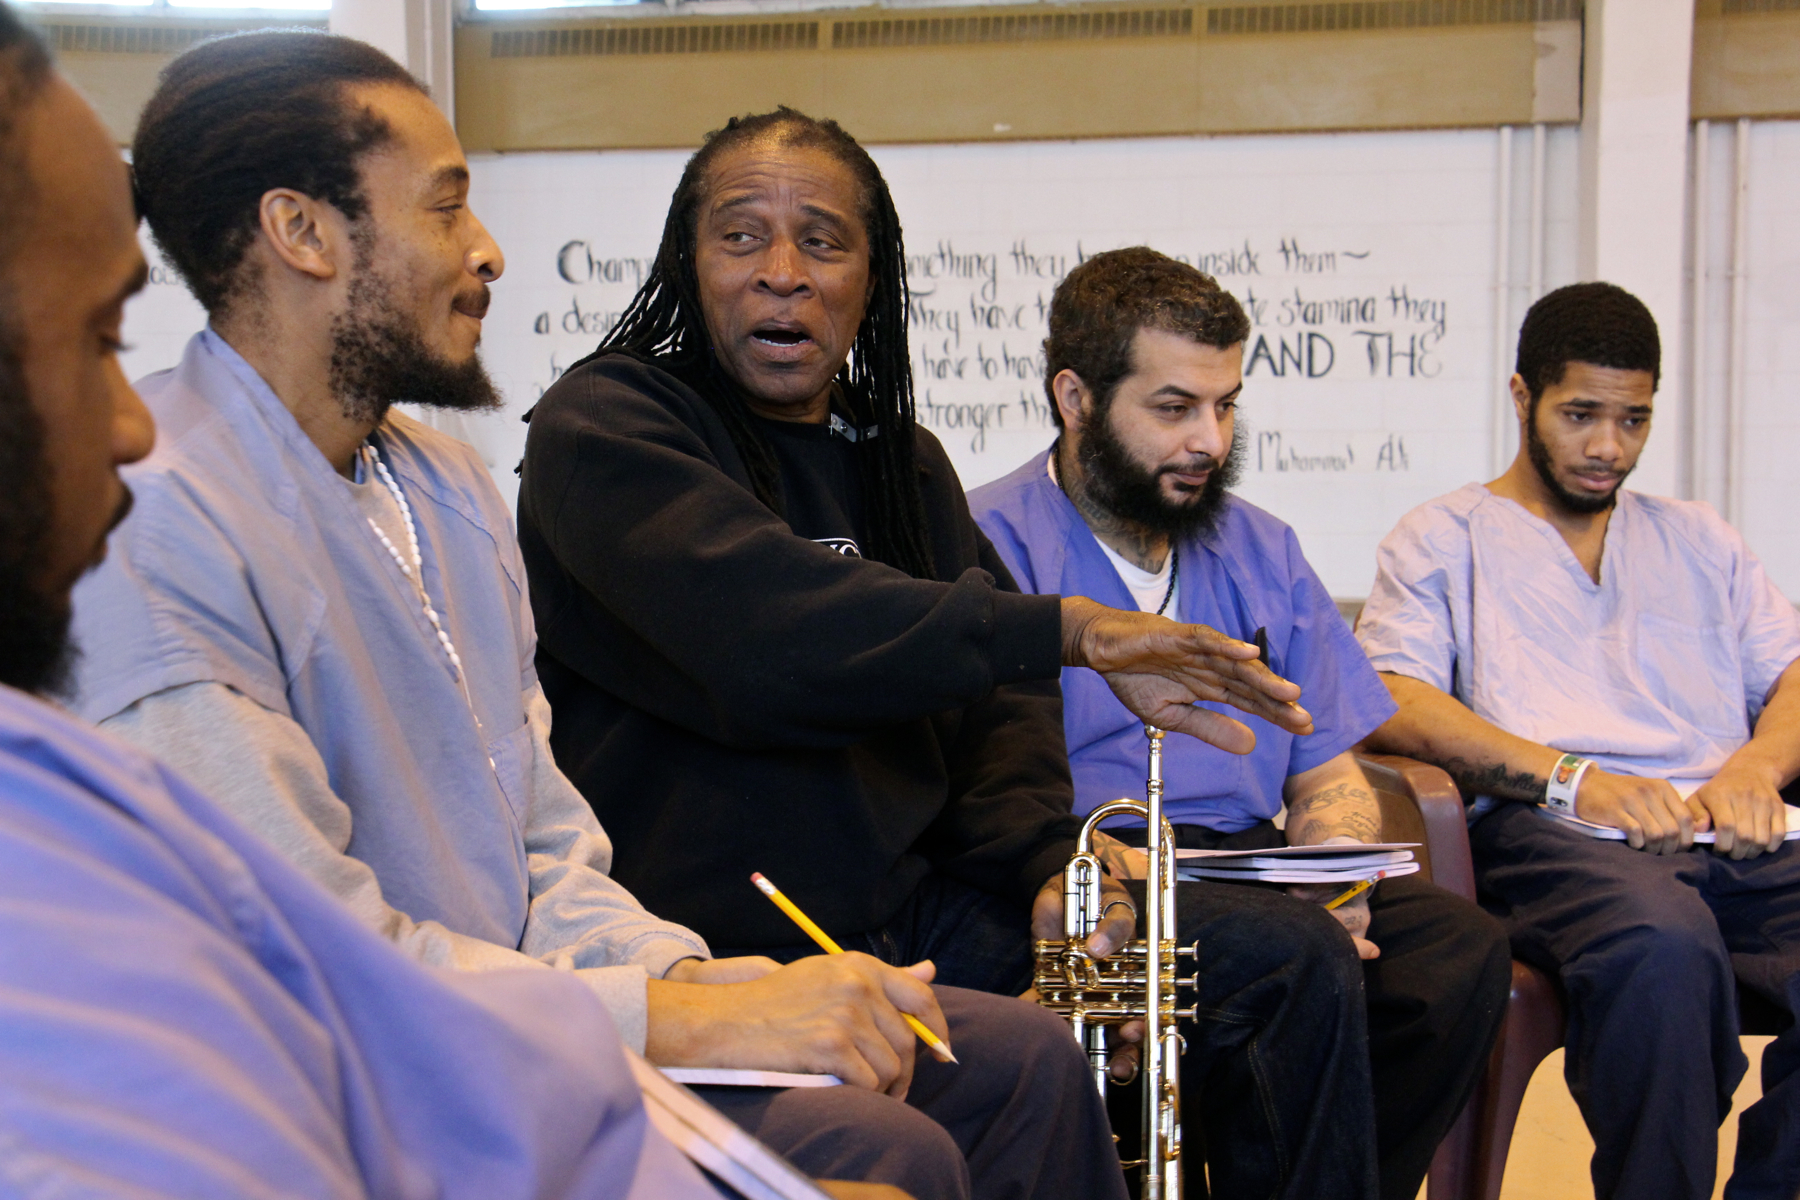 Seeking the music of 'Healing Tones' within Philly prison